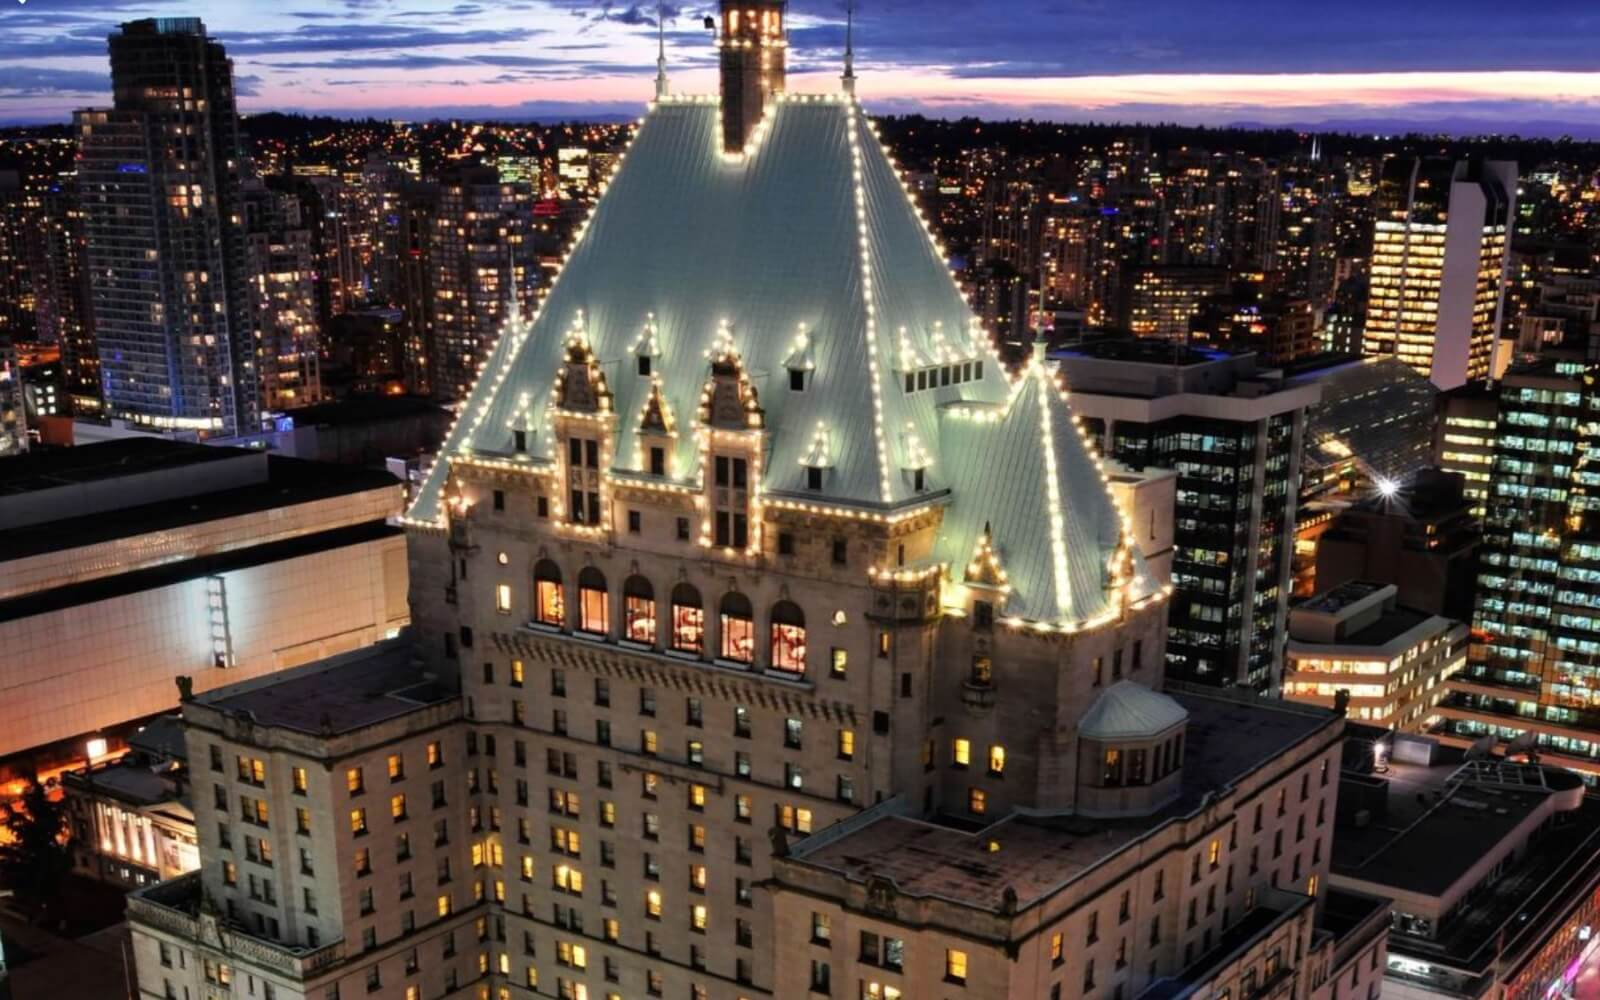 The Fairmont Hotel Vancouver at night